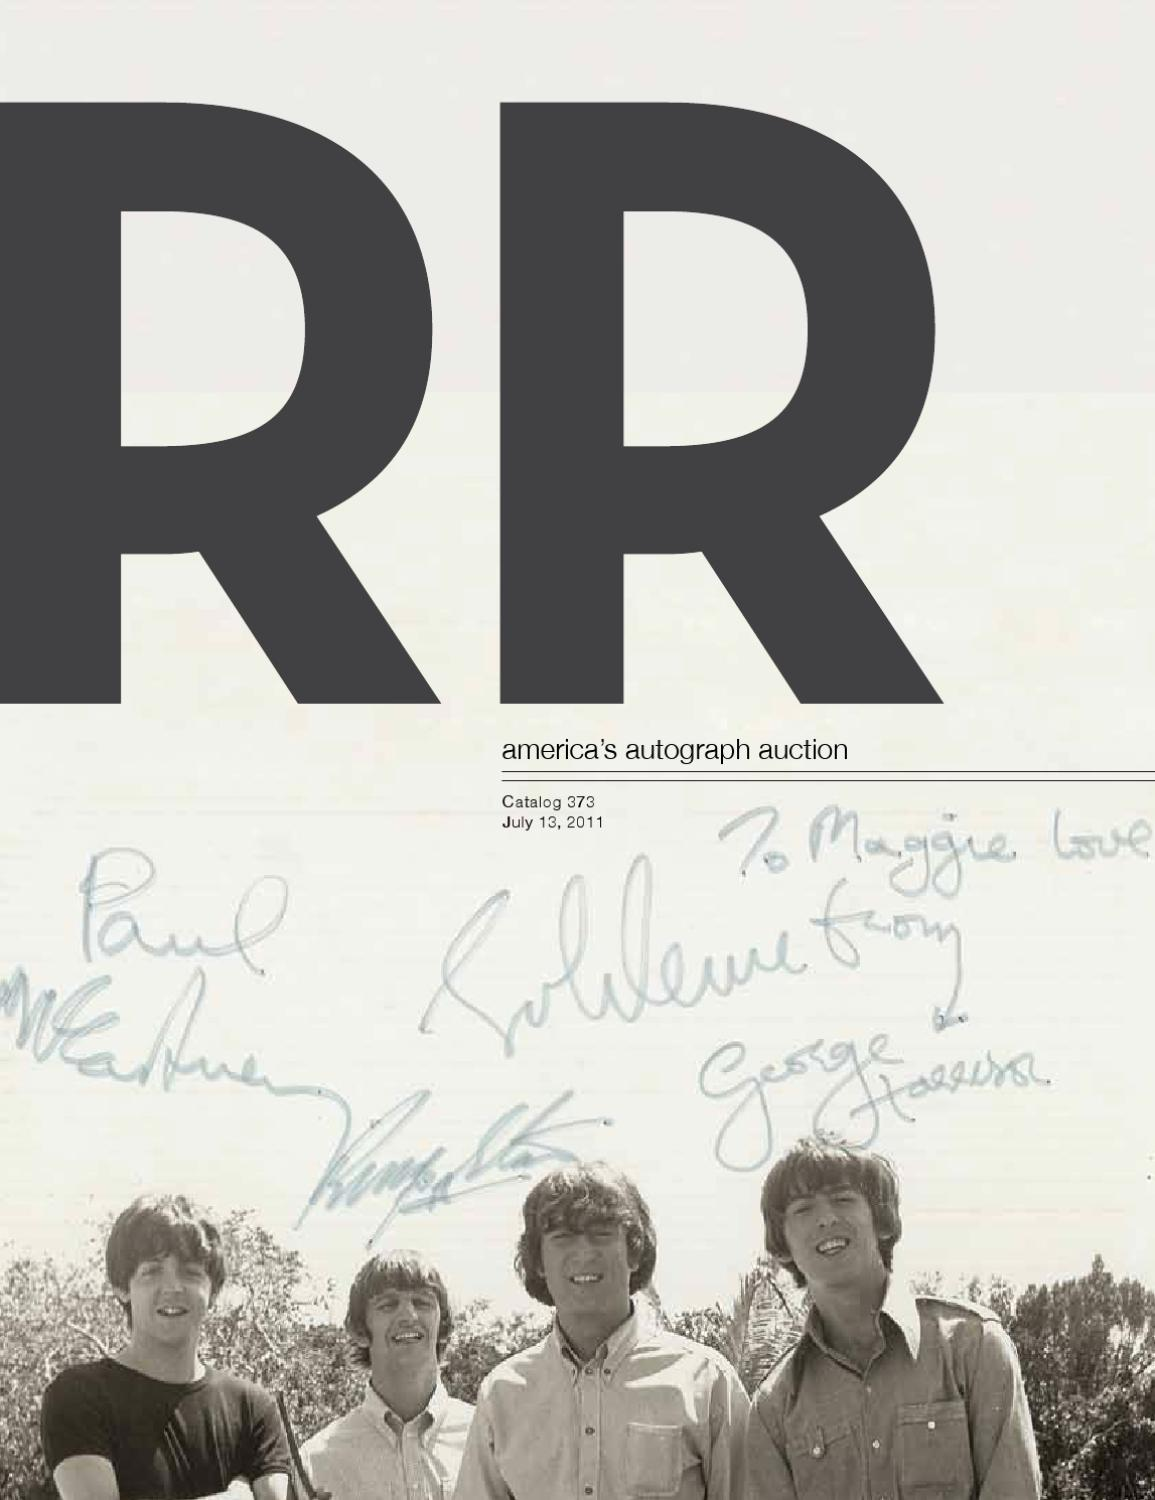 RR Auction Americas Autograph Auction Virtual Catalog 373 by RR Auction -  issuu 92c3d8edb